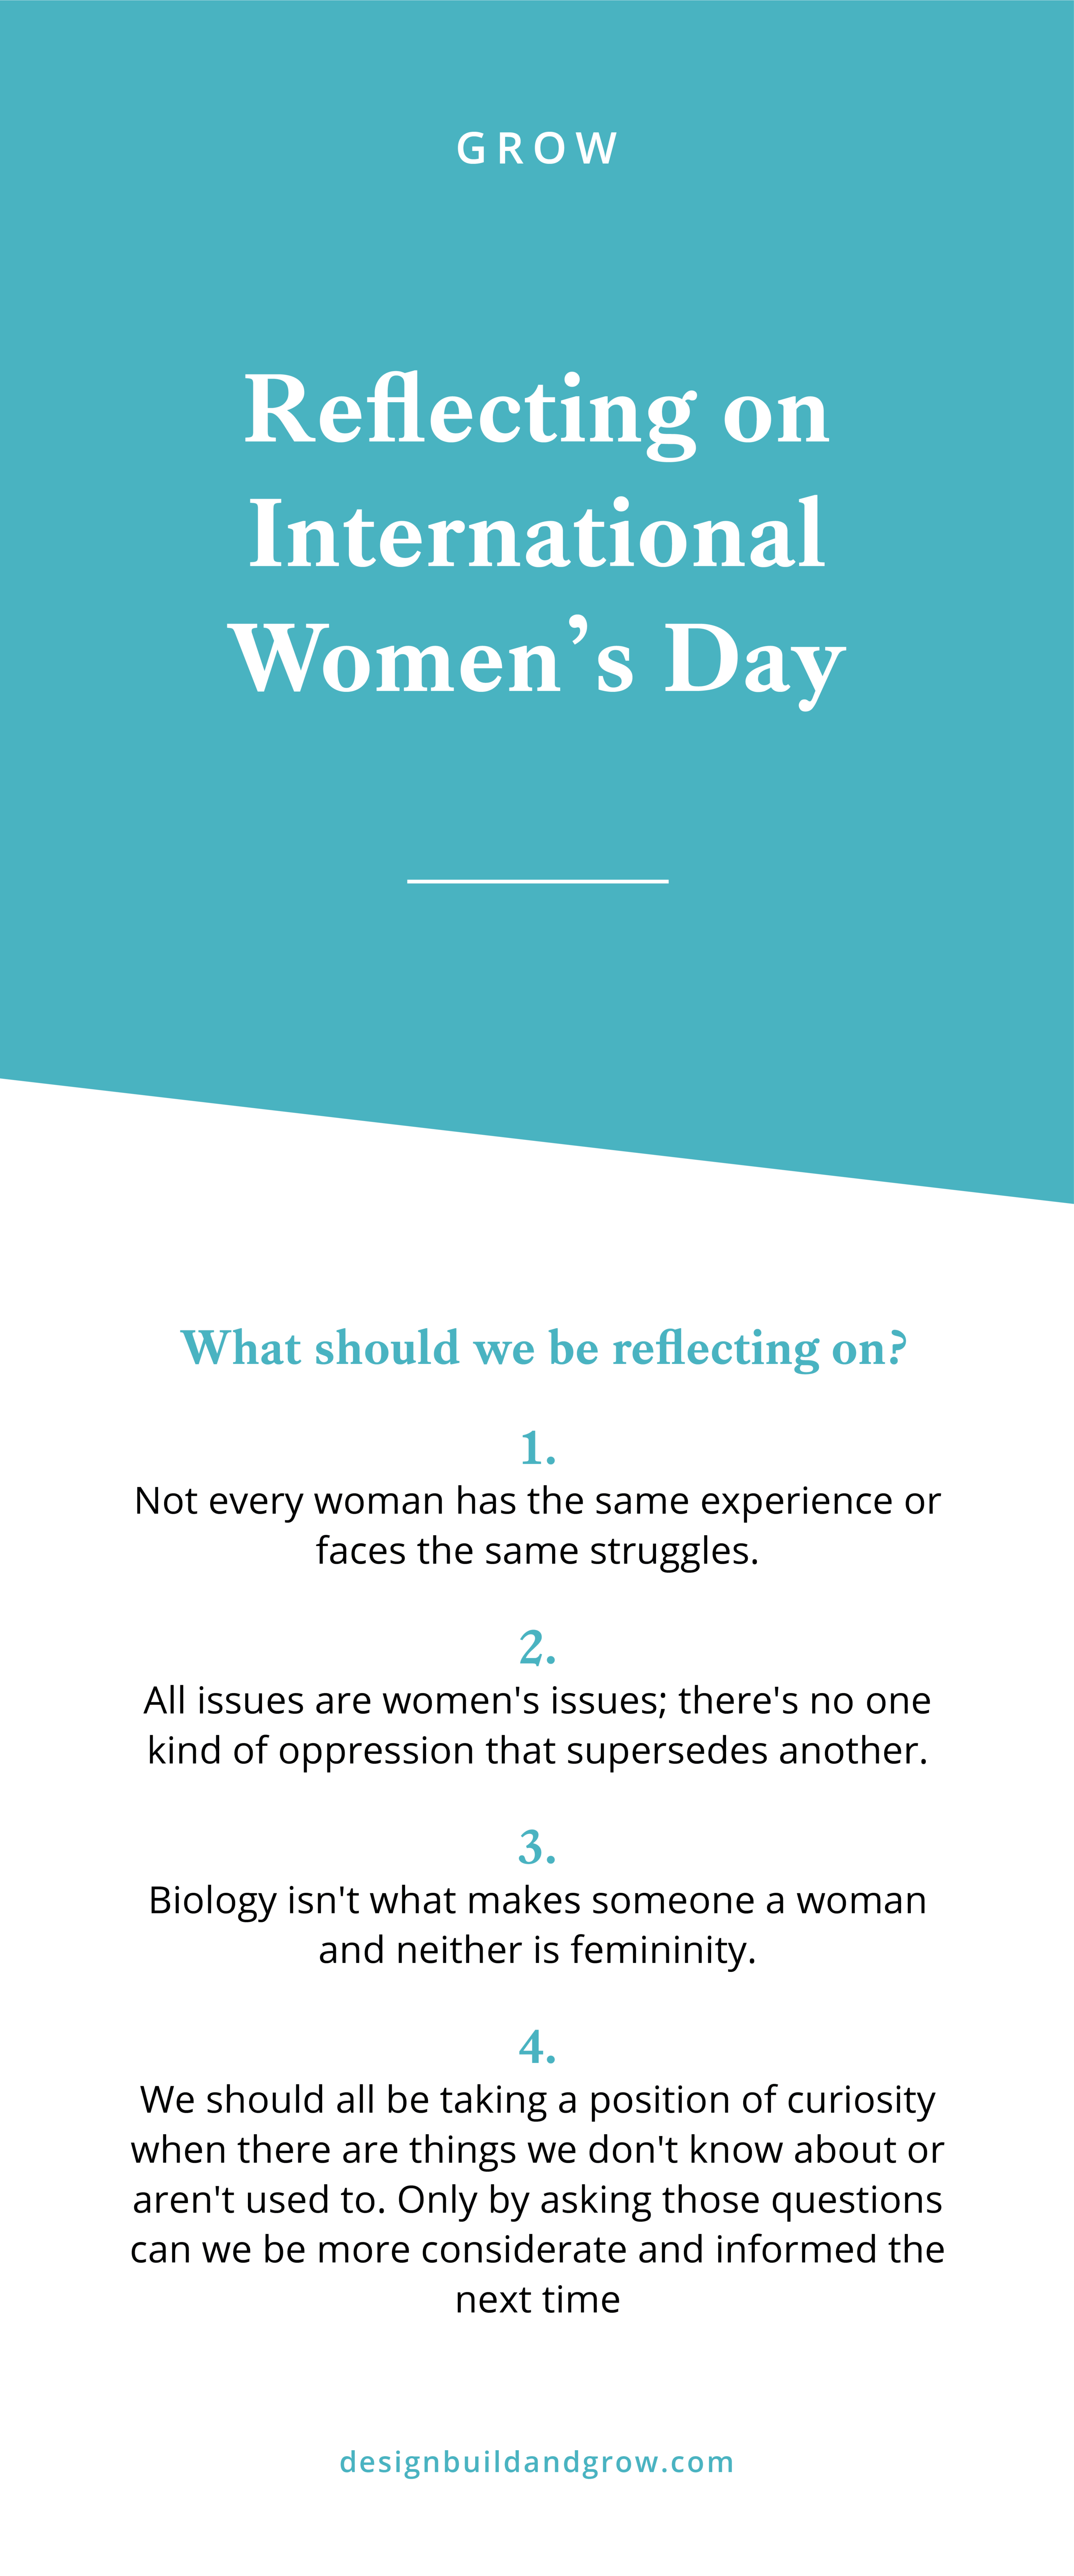 Reflecting on internationals womens day and why we should celebrate it all year long